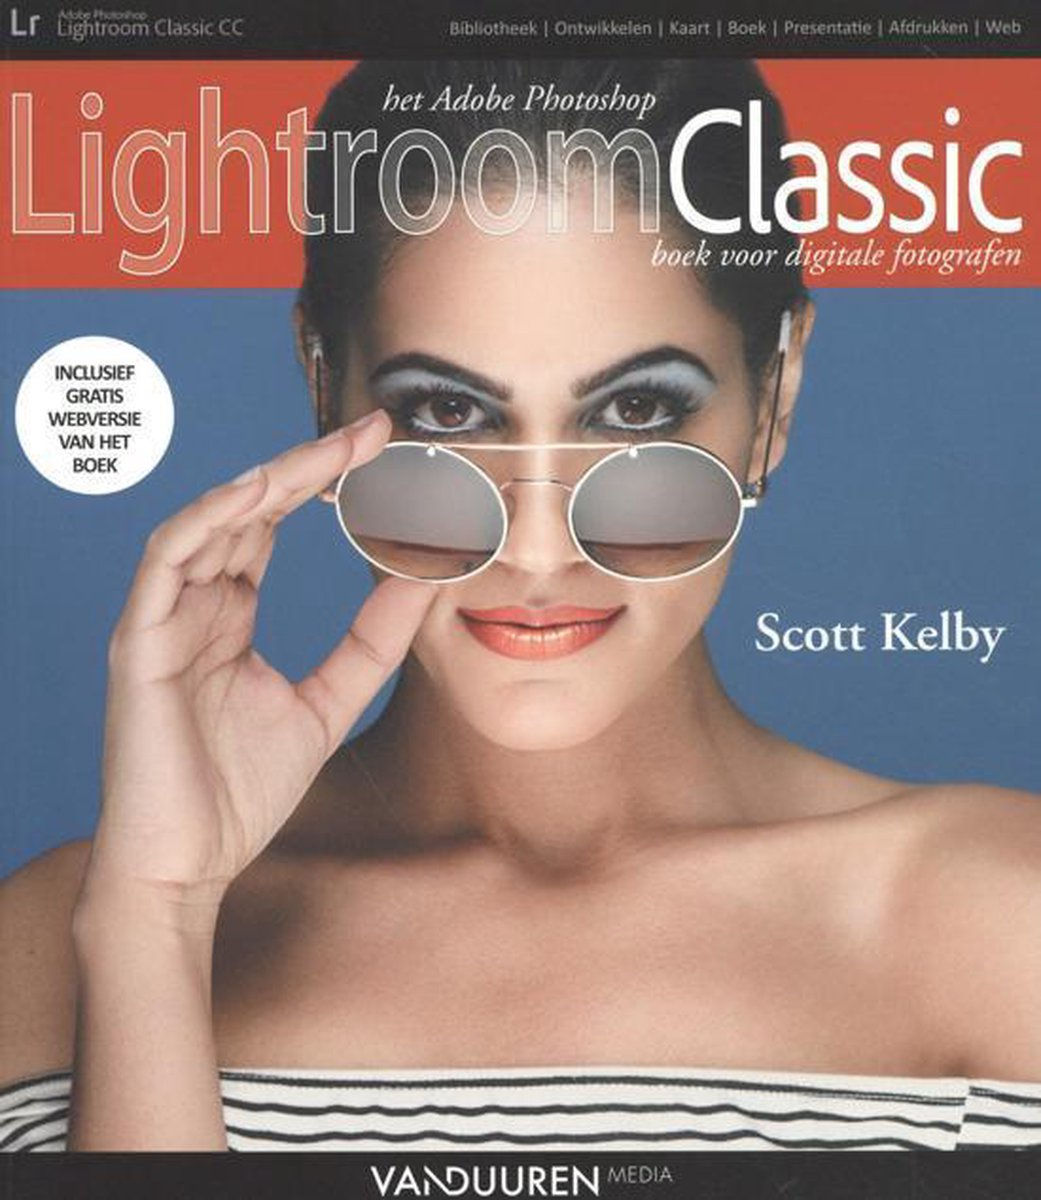 Het Adobe Photoshop Lightroom Classic boek voor digitale fotografen - Scott Kelby